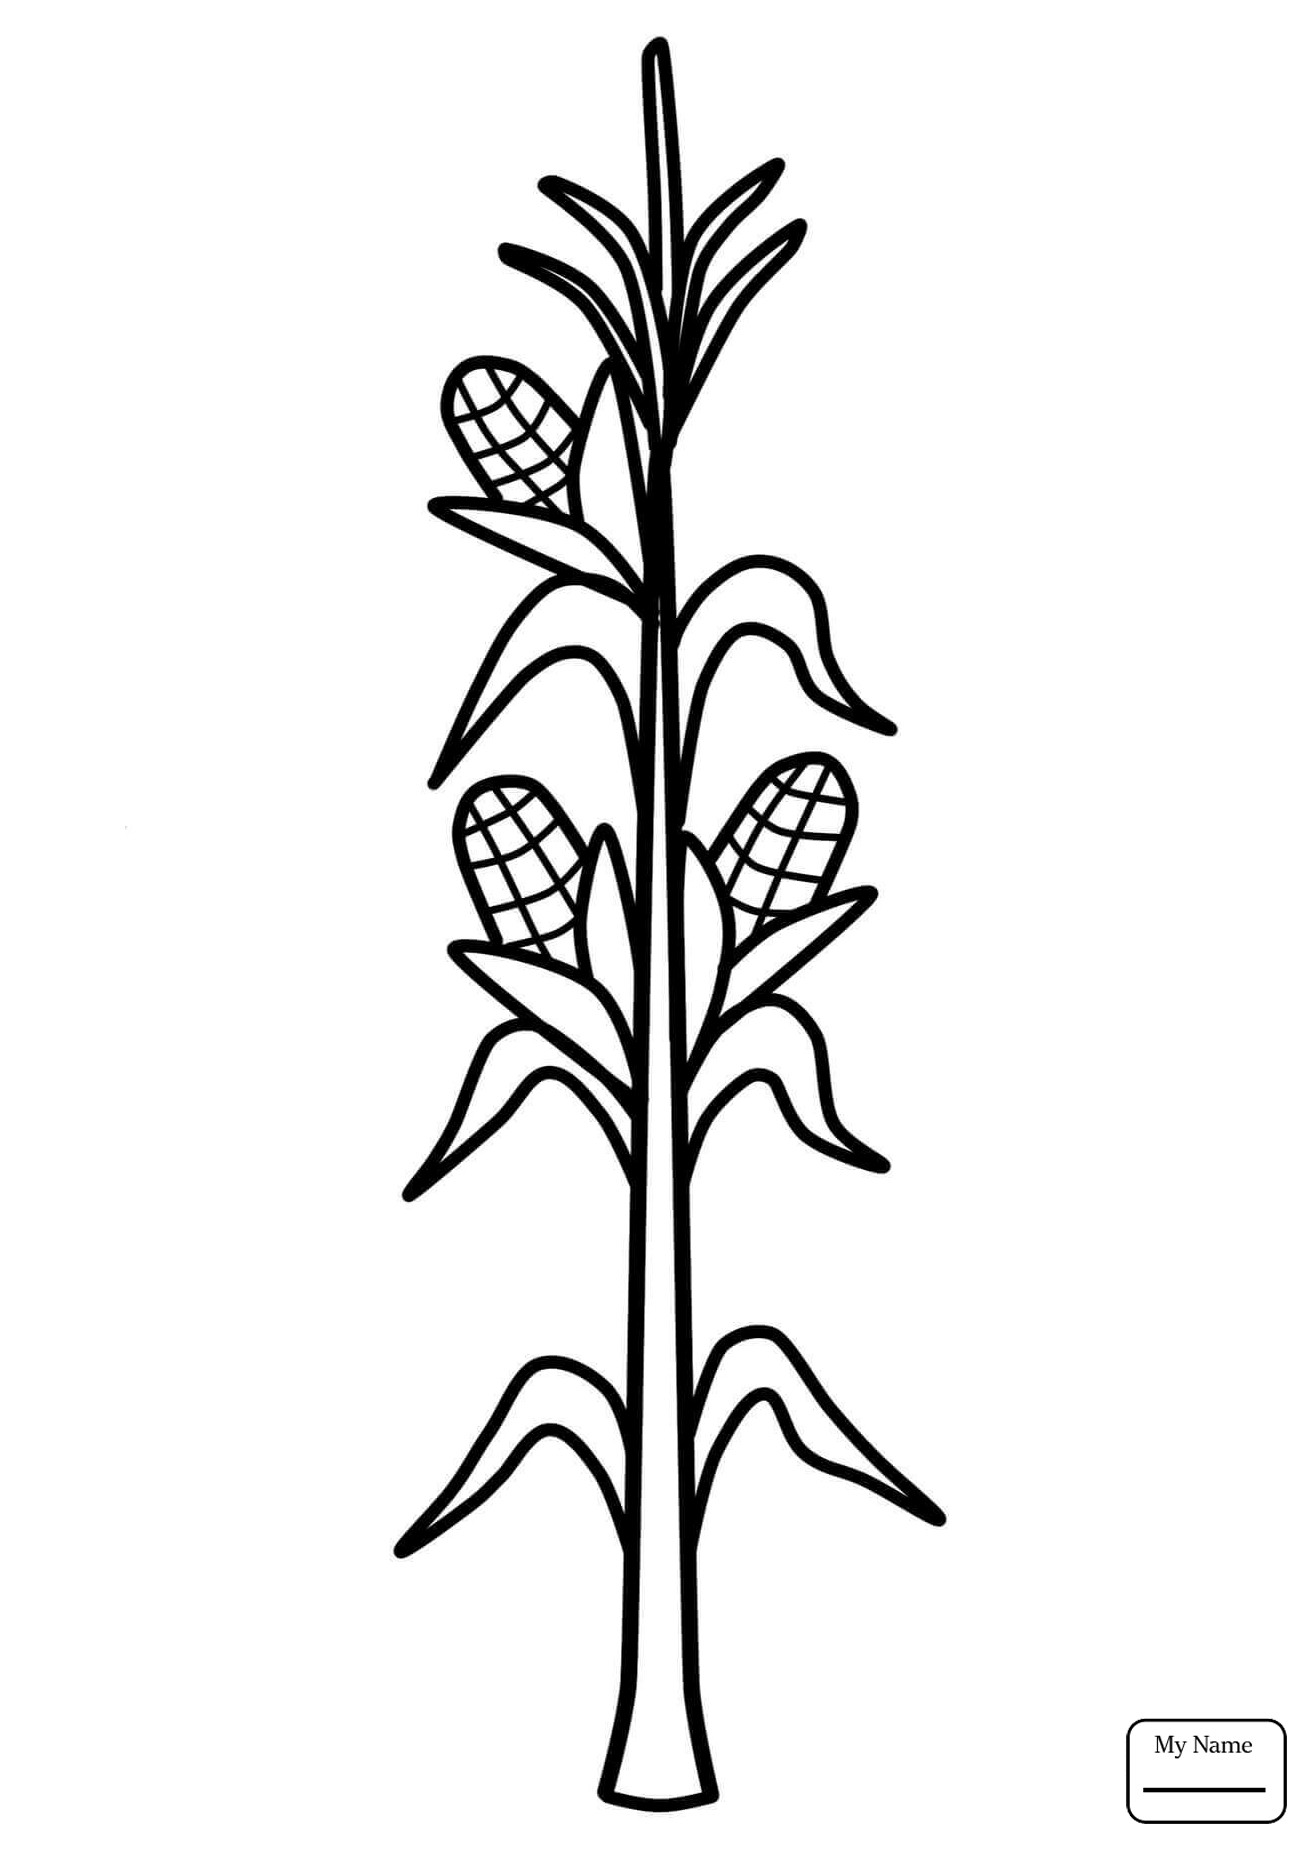 Corn stalk drawing at free for personal for Corn stalk template